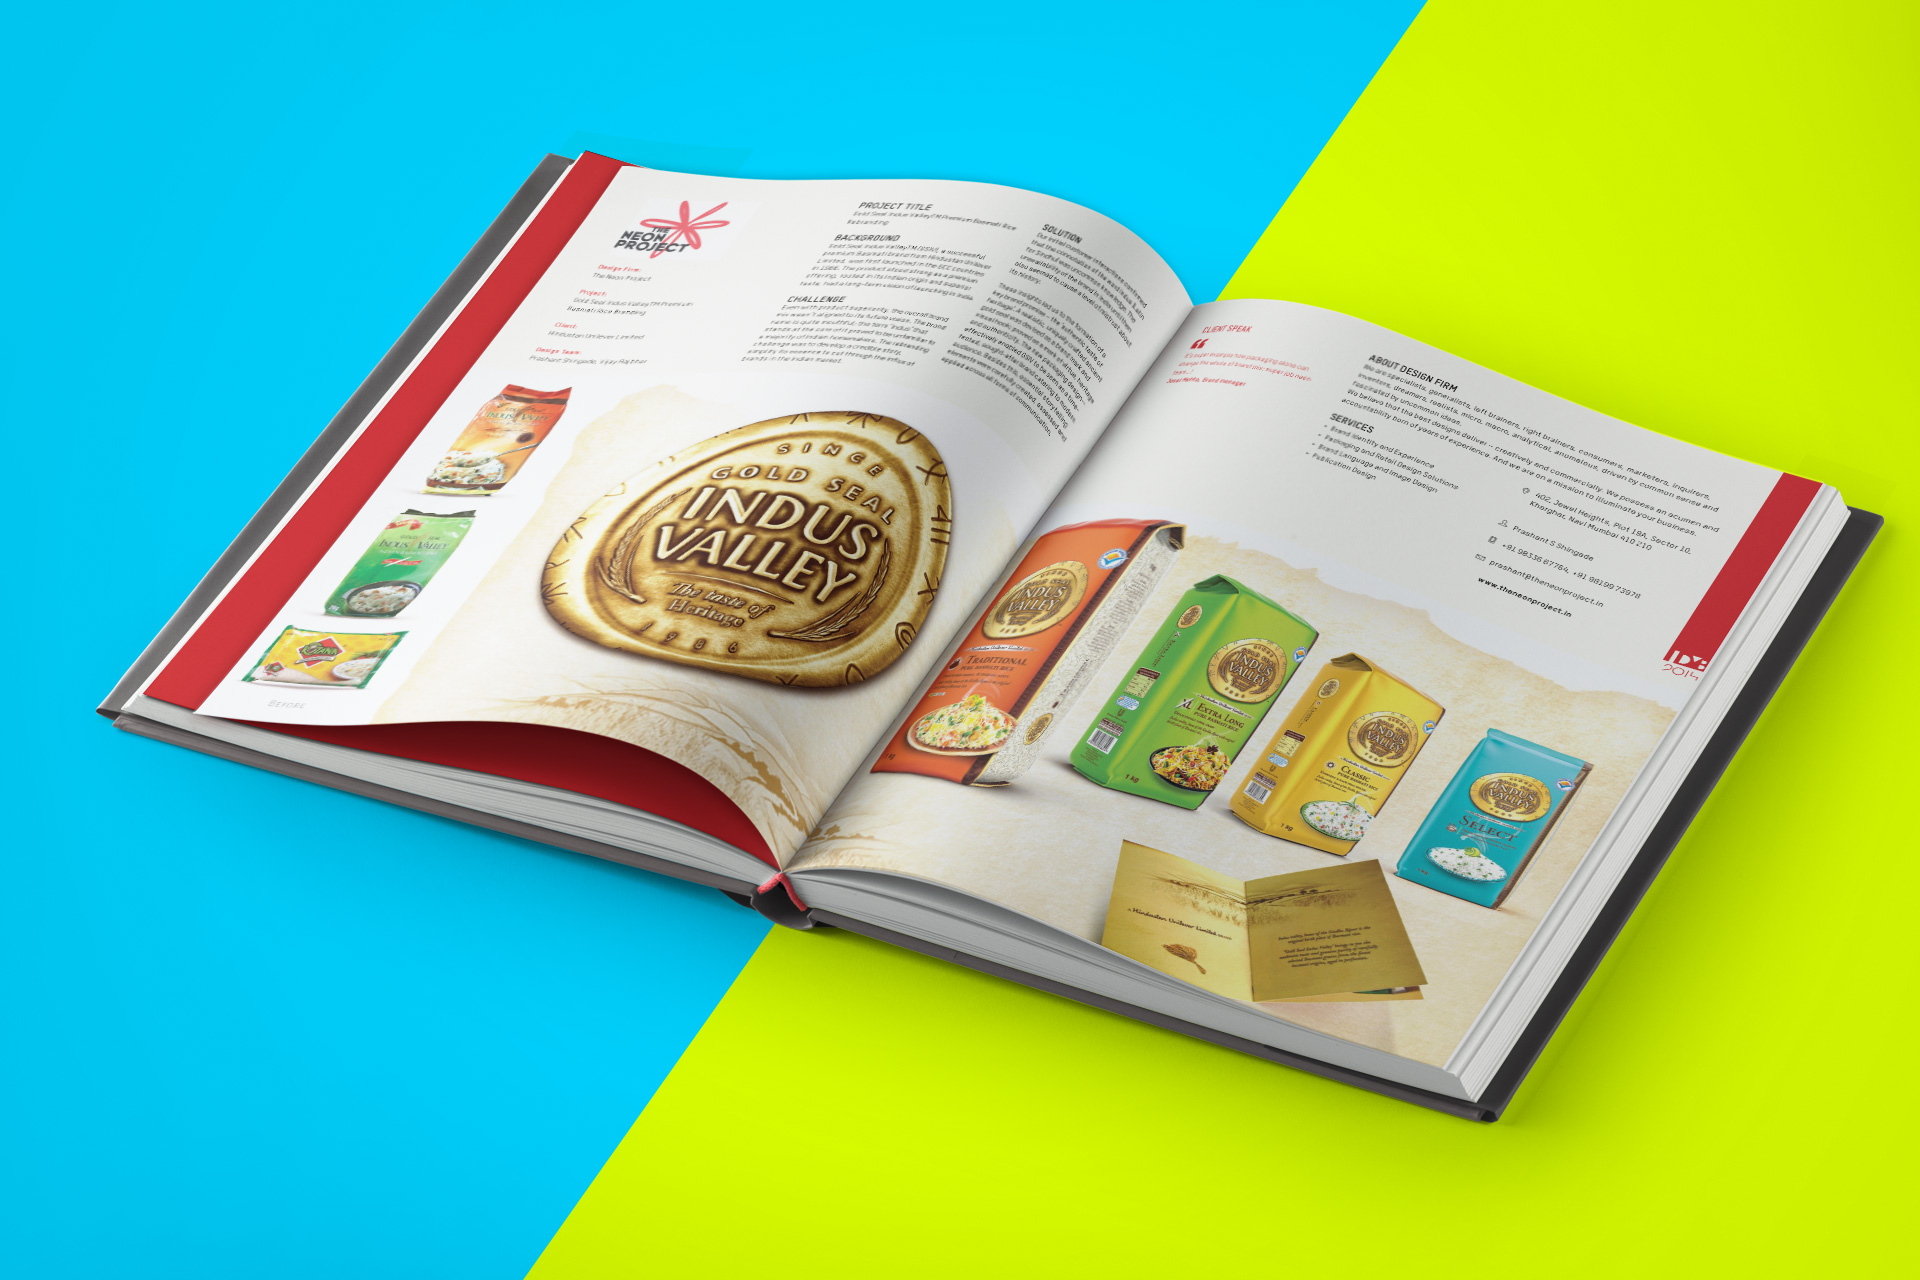 Confederation of Indian Industry India Design Book 2014 Featuring Gold Seal Indus Valley